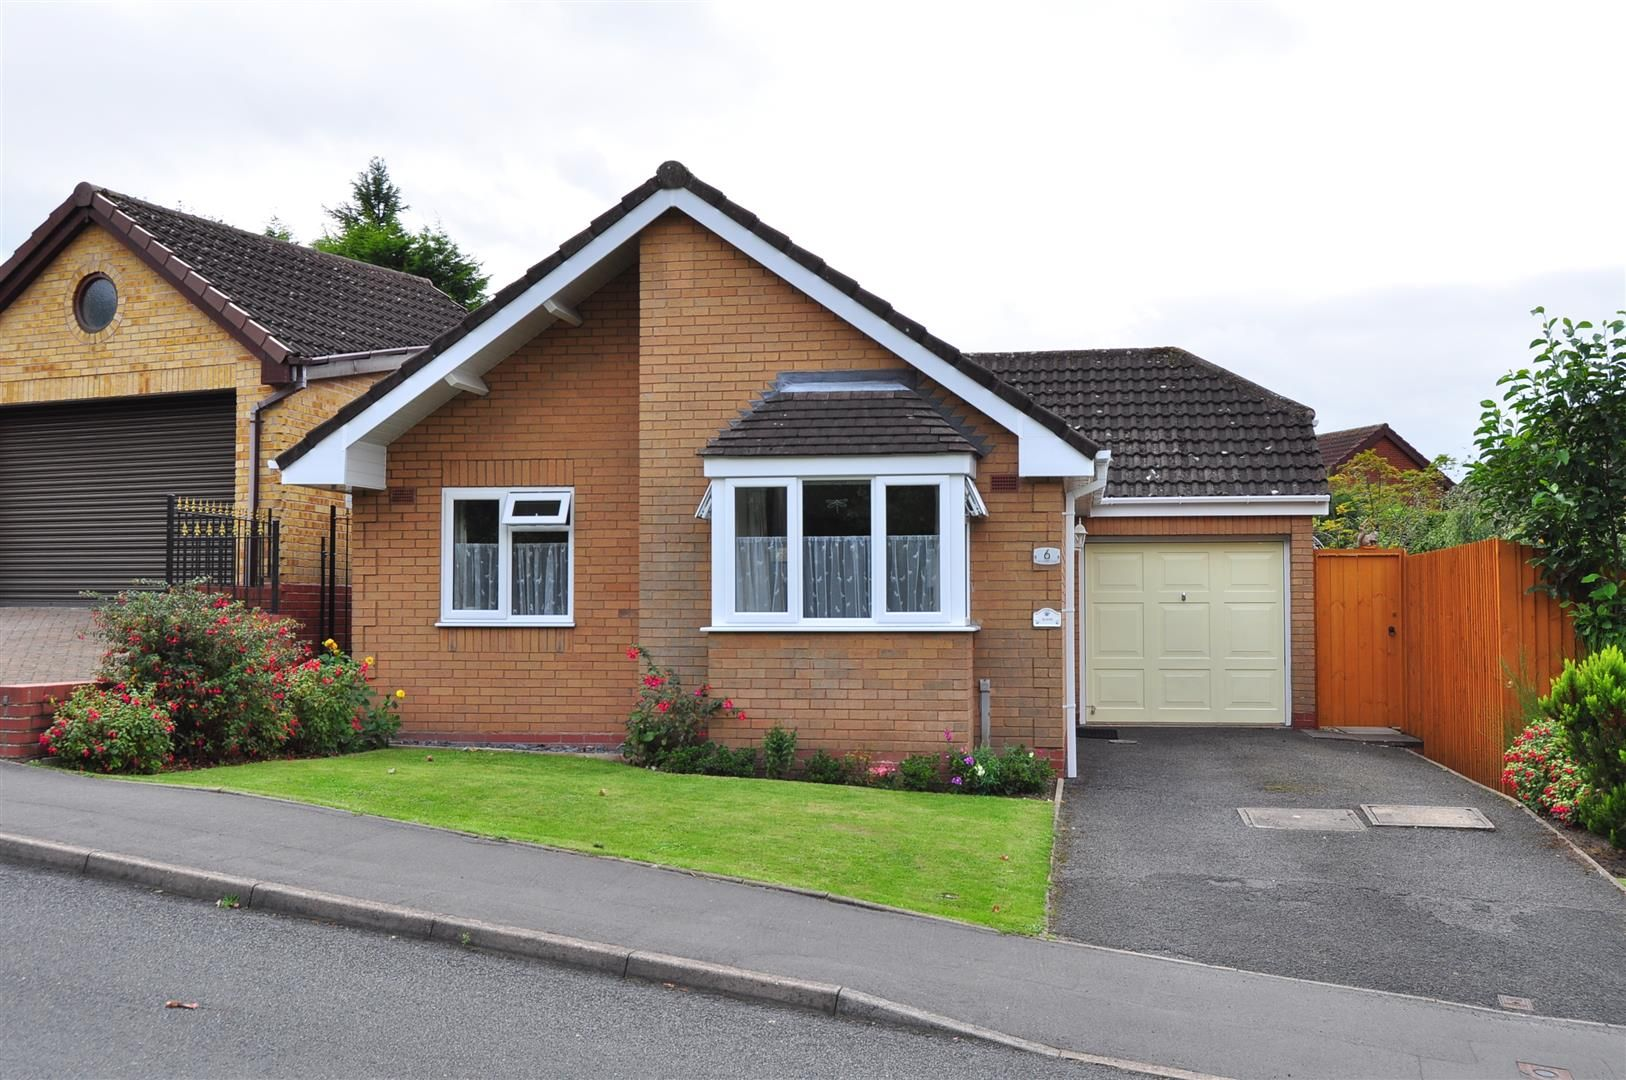 2 bed detached-bungalow for sale 23